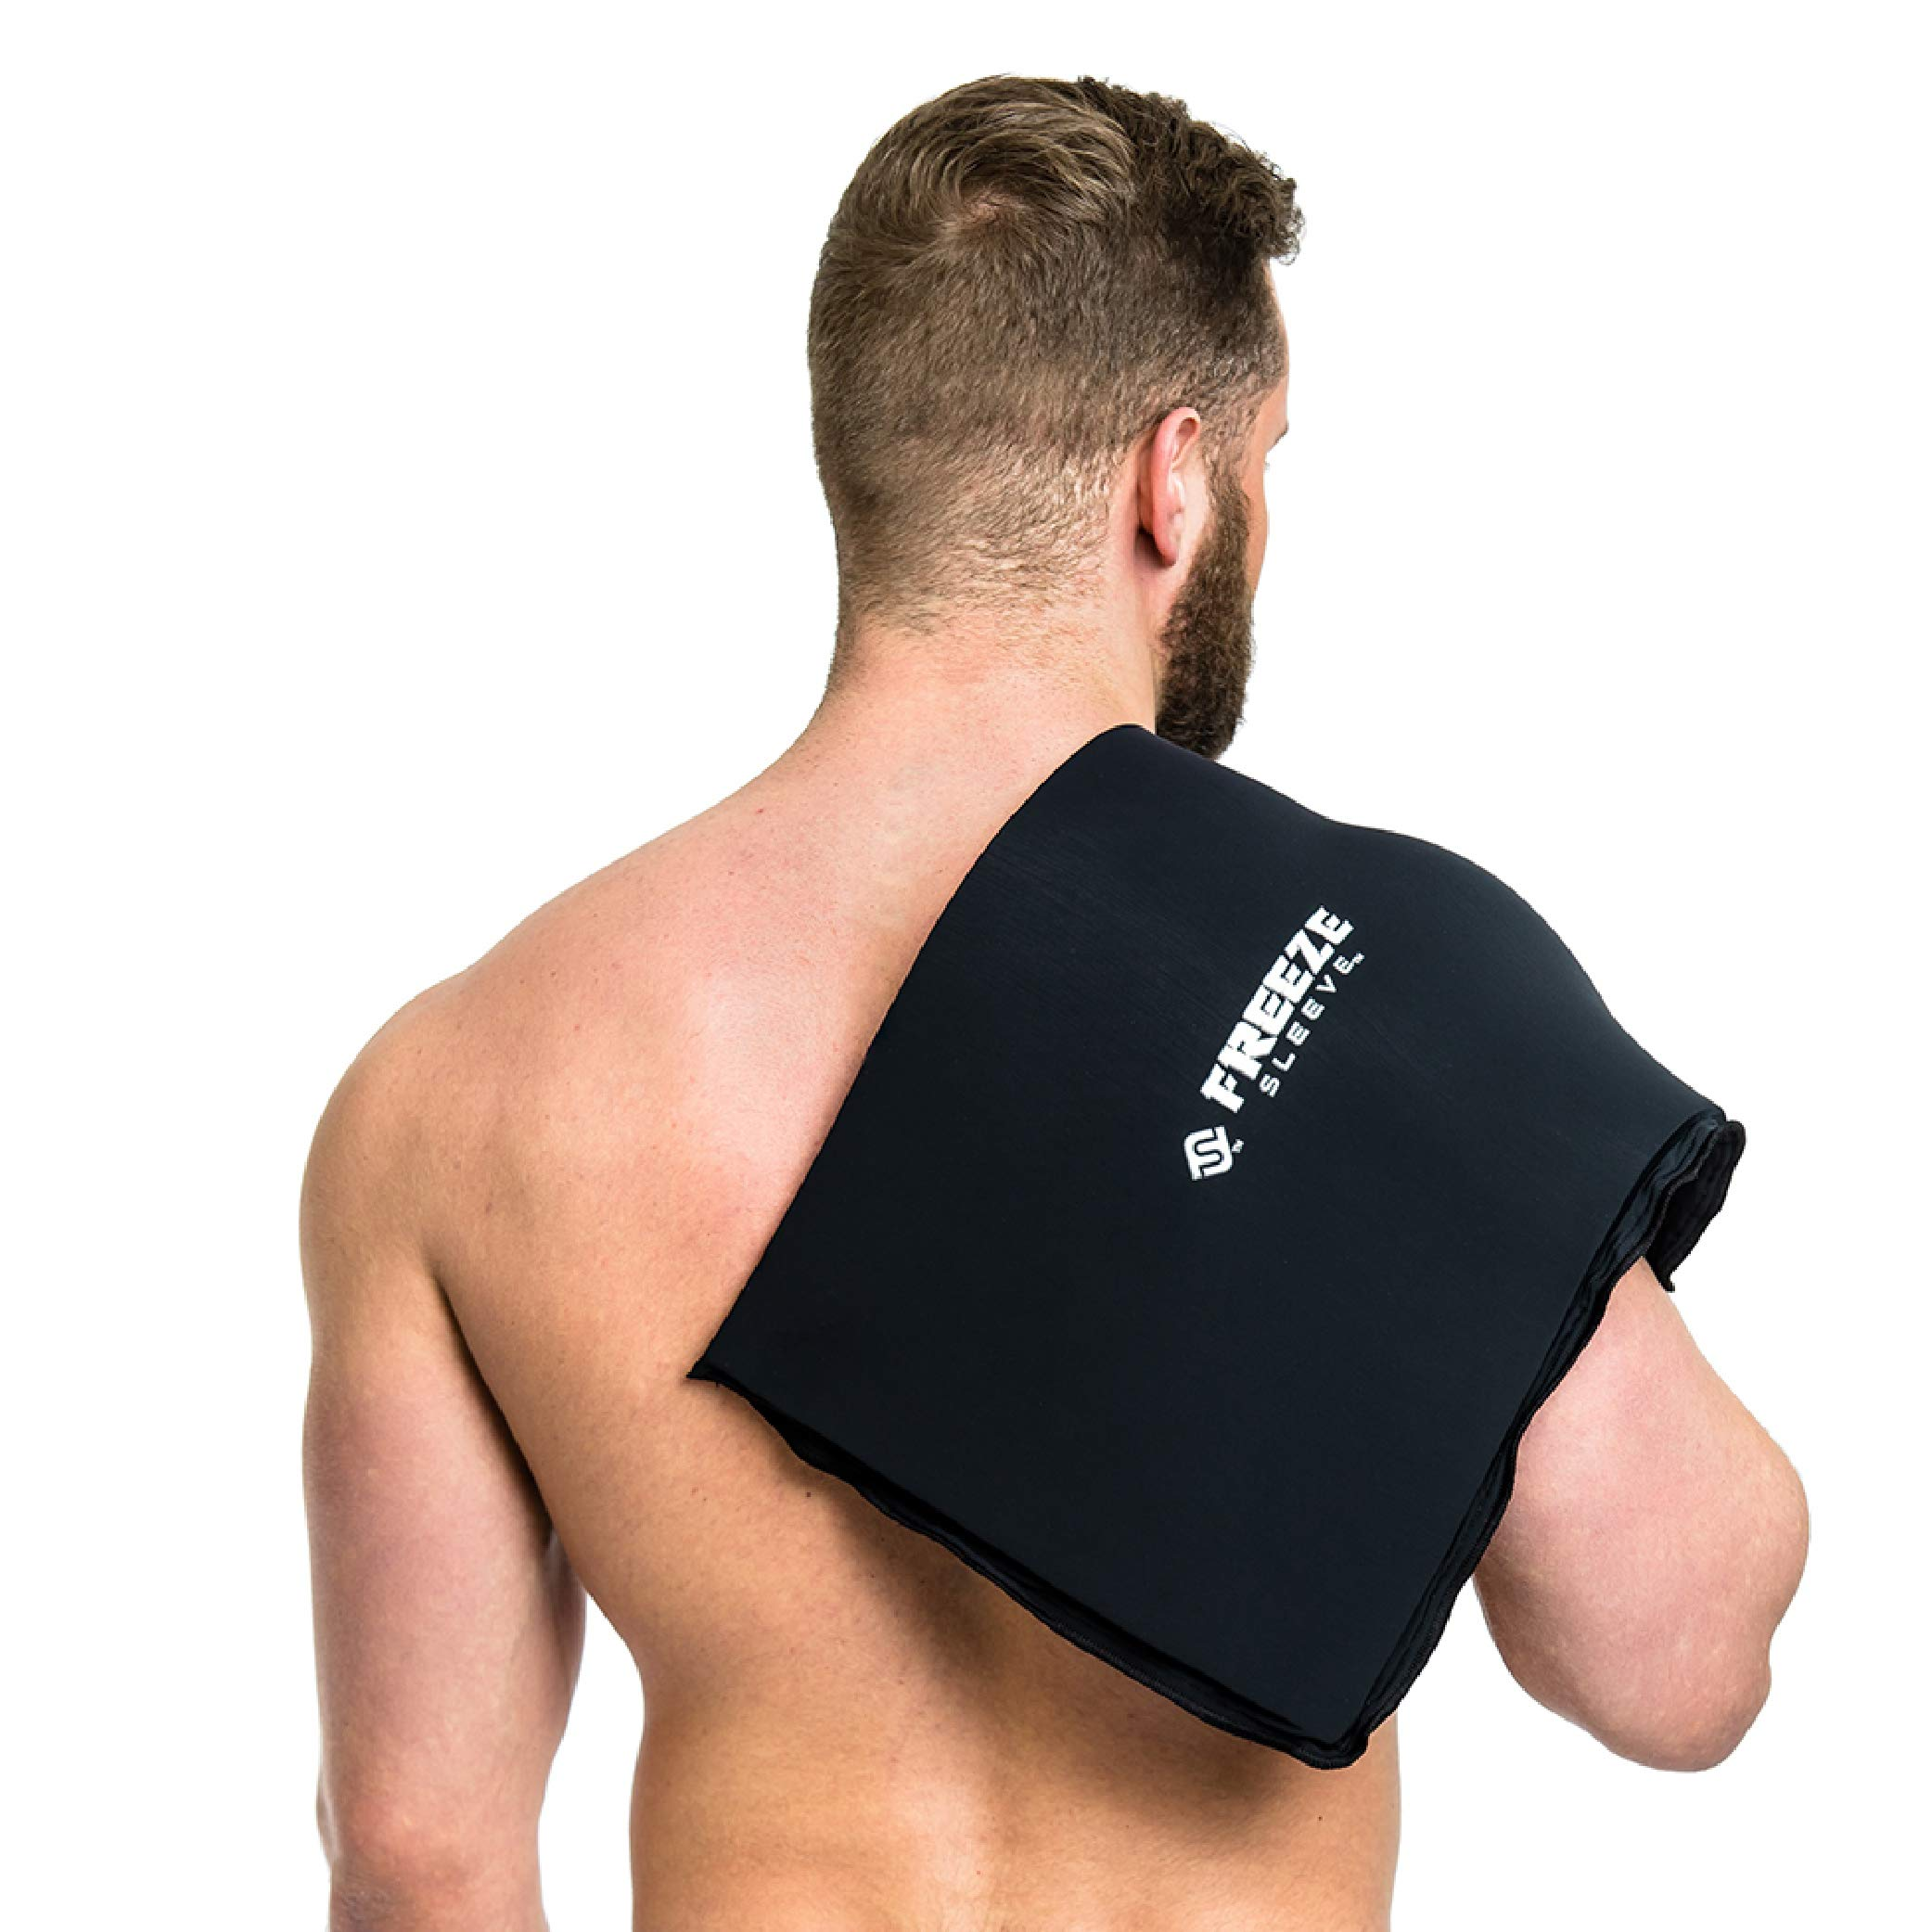 FreezeSleeve Flat Pak - 12'' x 17'' Cold Therapy Treatment- Black by FreezeSleeve